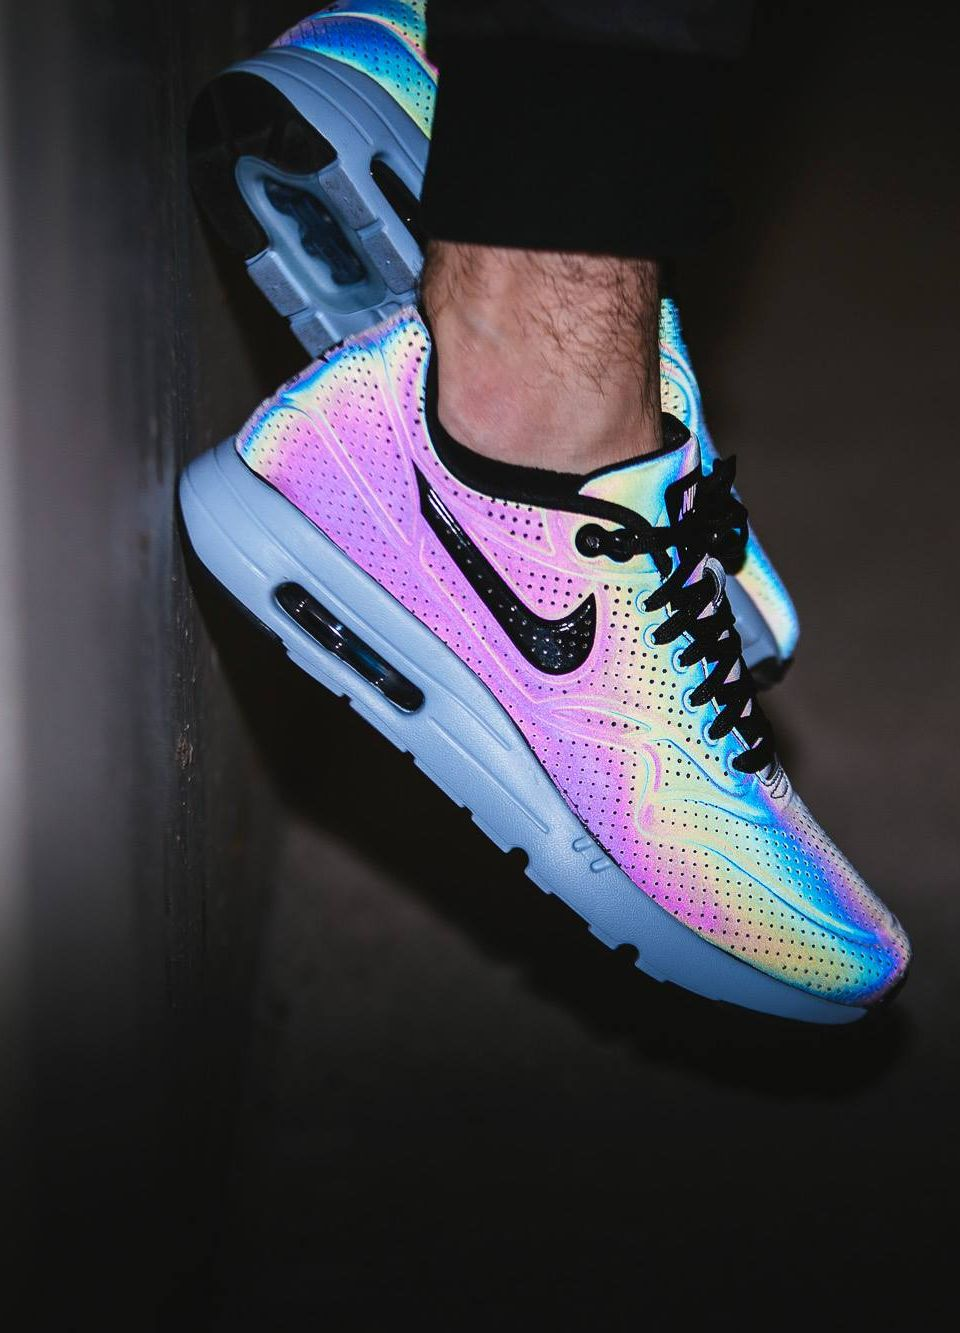 nike air max 1 ultra moire iridescent for sale nz